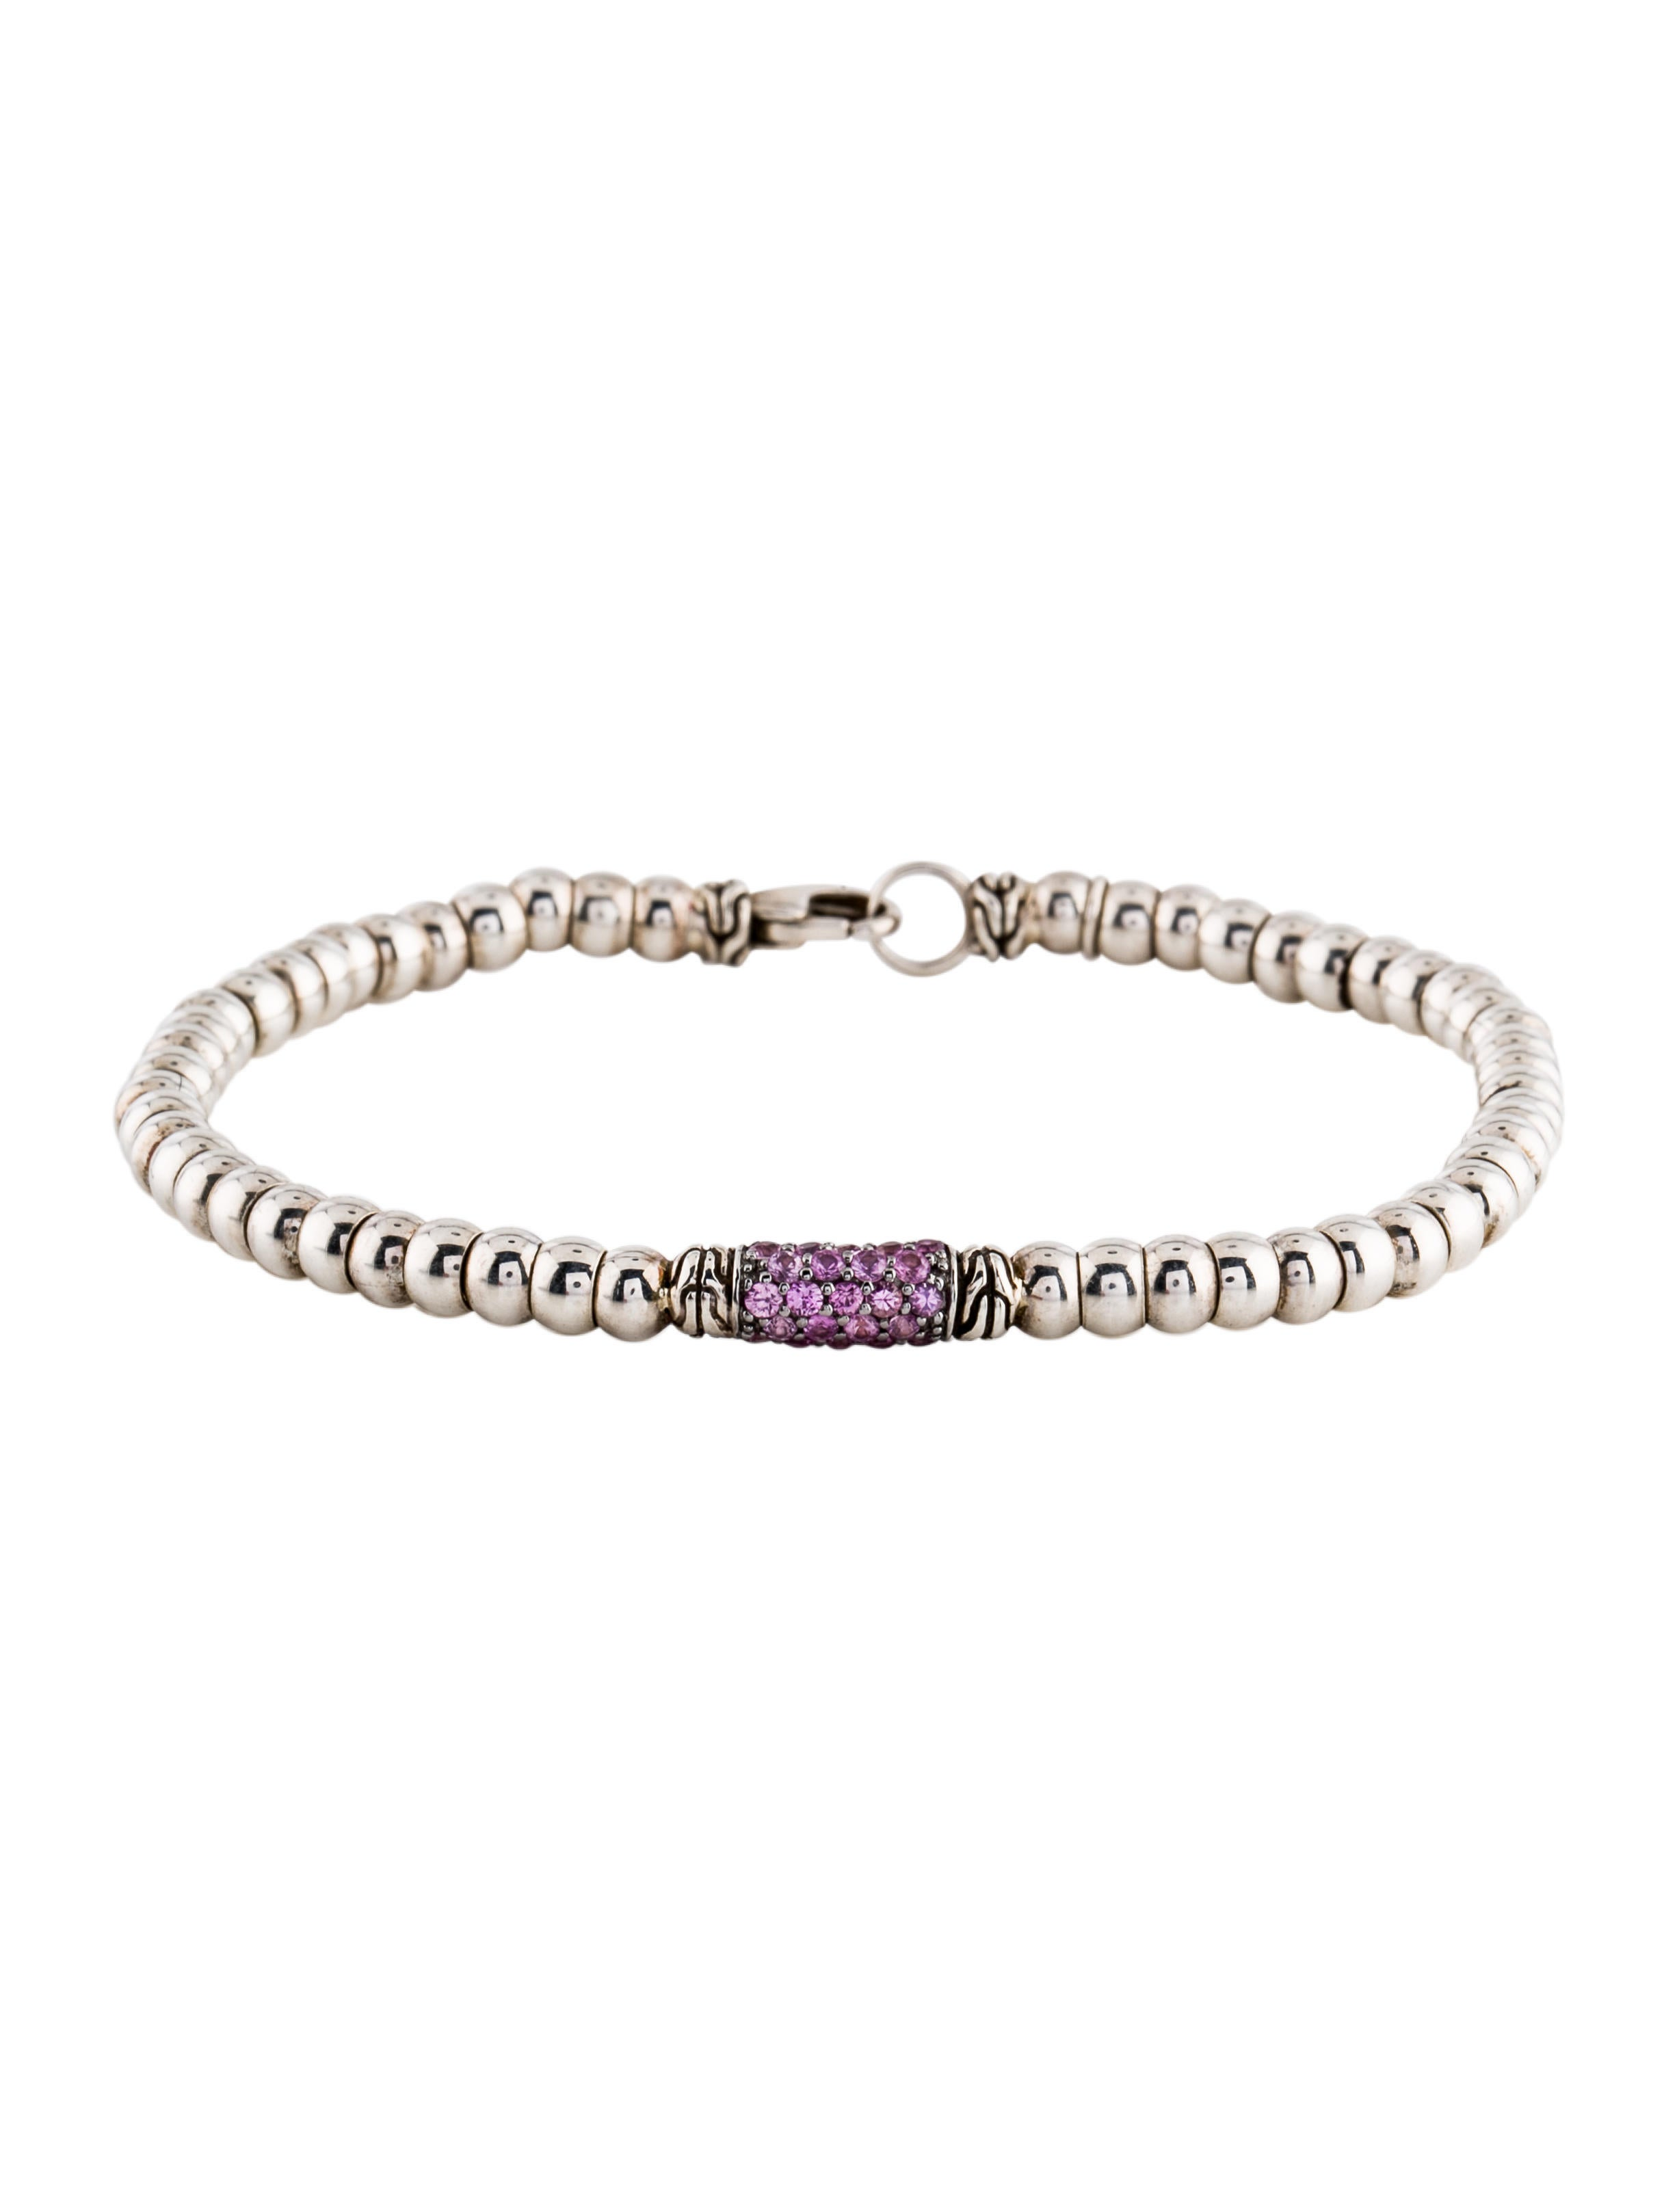 rose pink lyst fernando bracelet in sapphire jewelry jorge product gold gallery normal